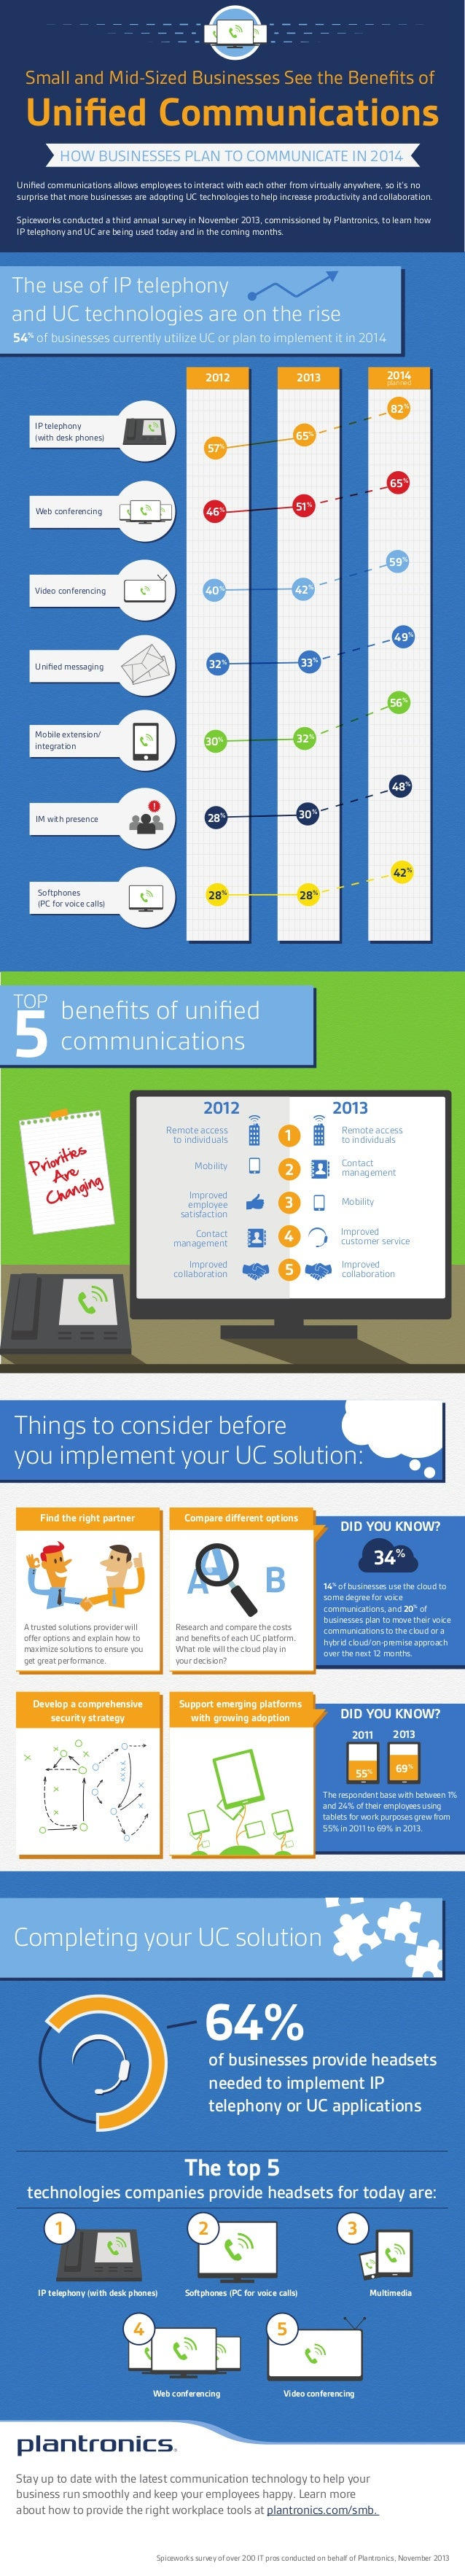 Small and Mid-Sized Businesses See the Benefits of Unified Communications HOW BUSINESSES PLAN TO COMMUNICATE IN 2014 Unified ...